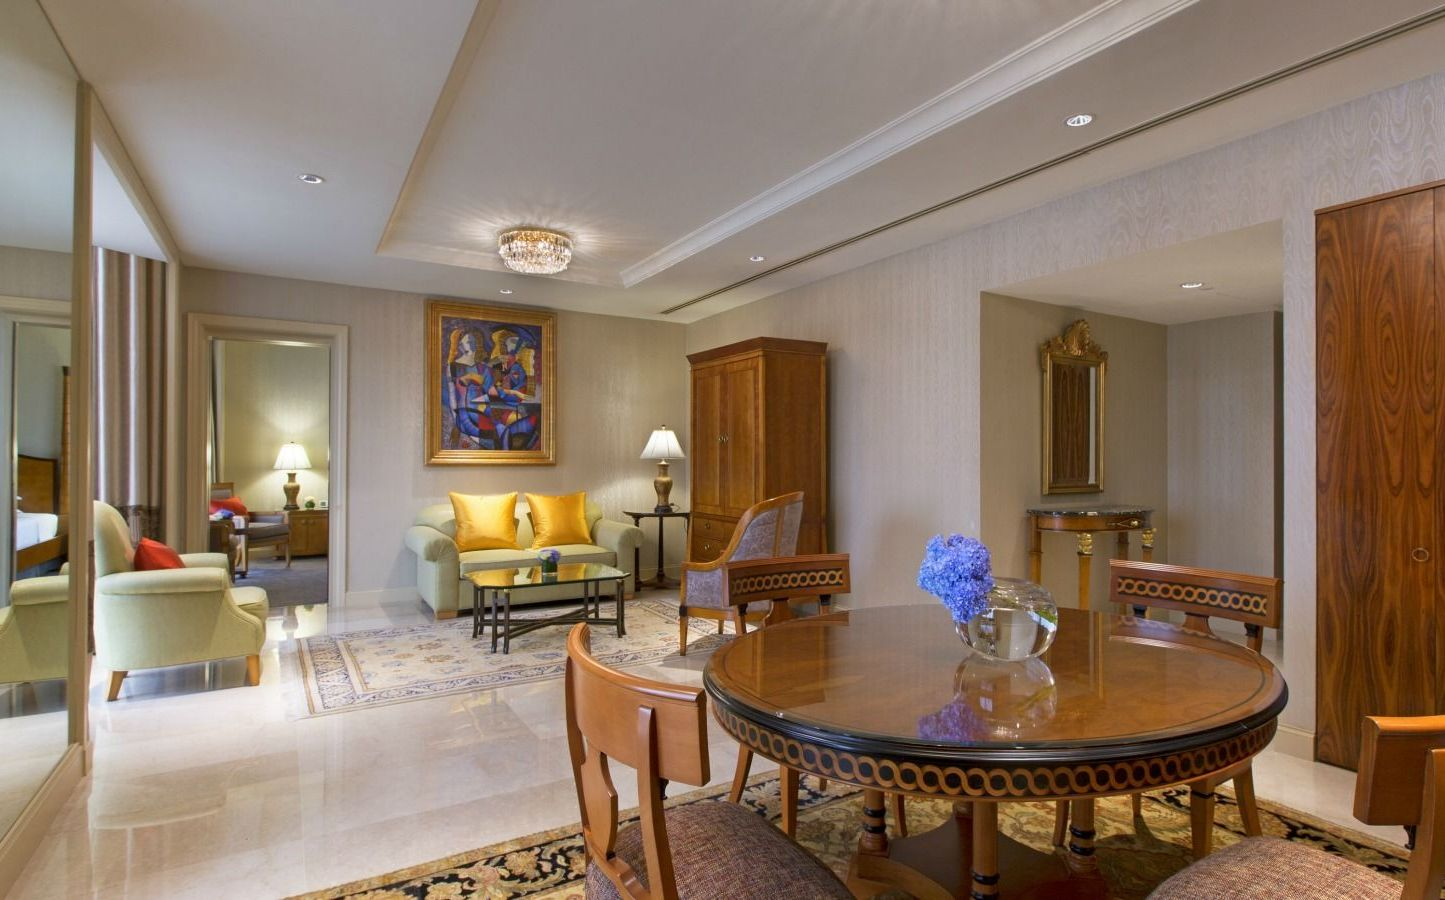 luxury hotel in singapore | deluxe suites at sheraton towers singapore